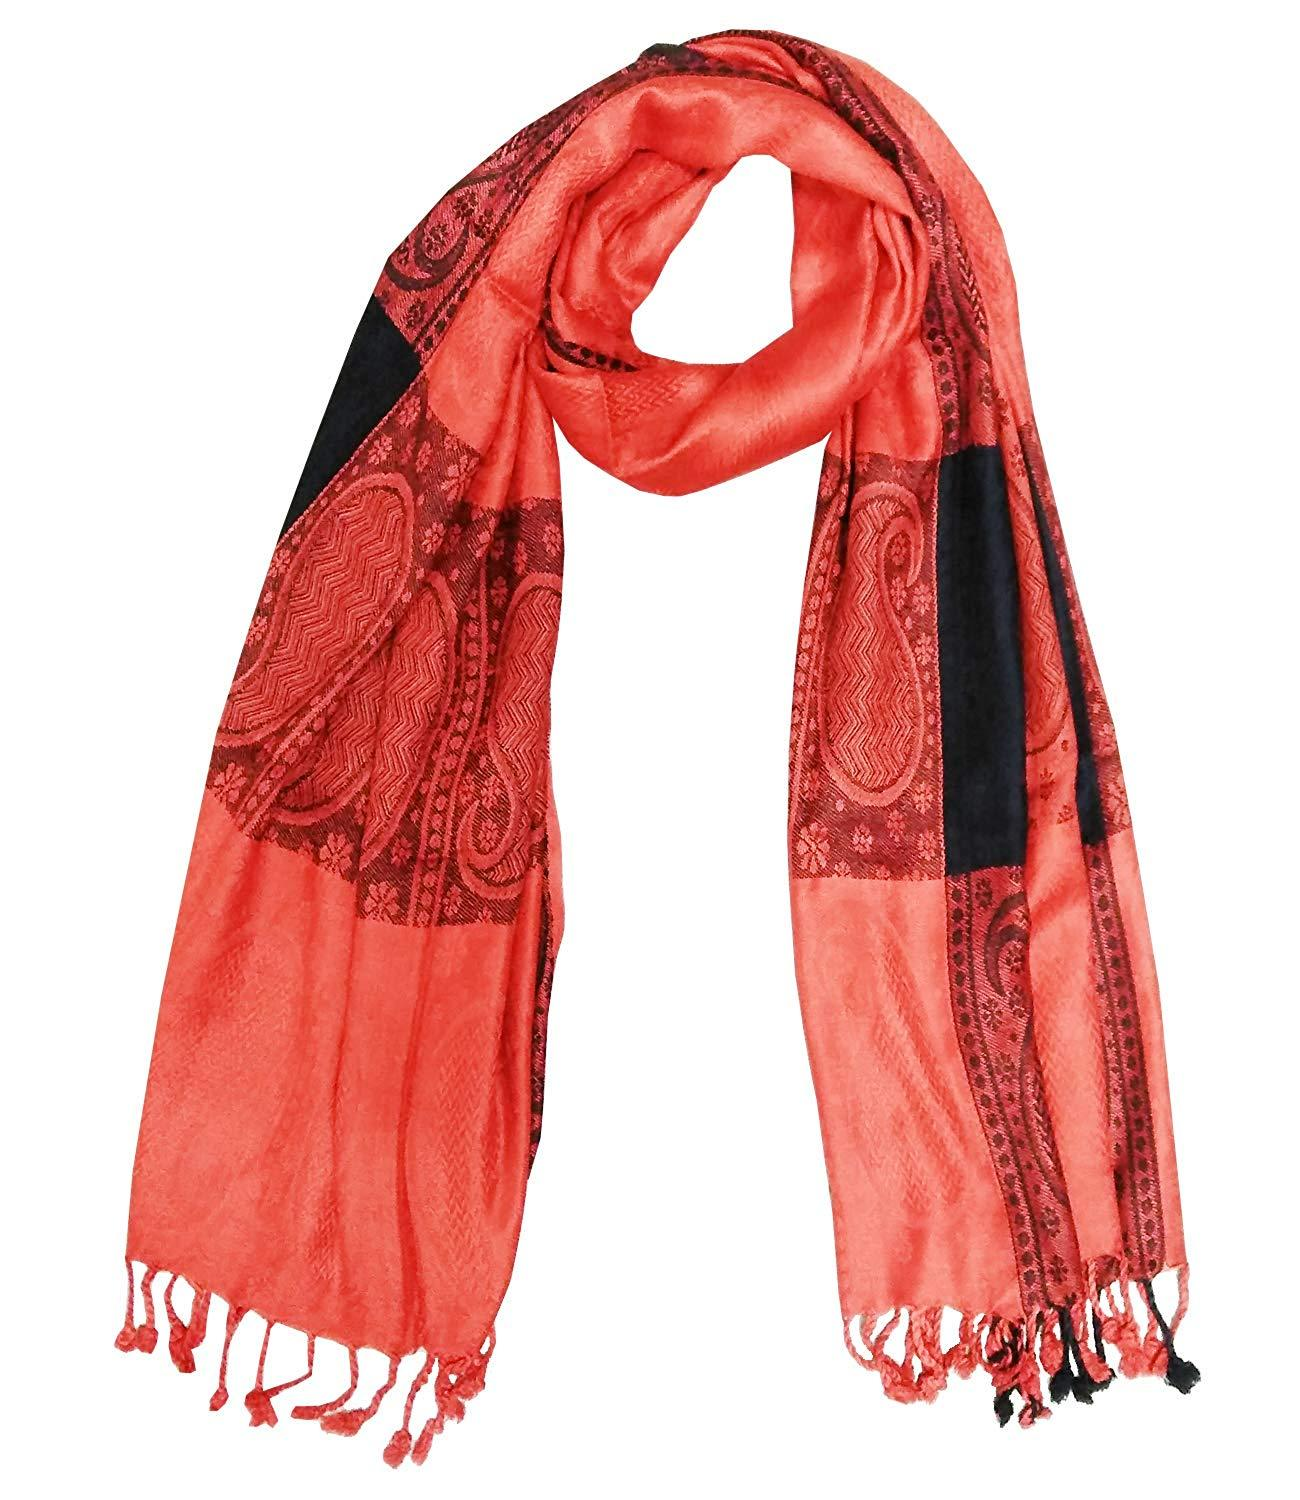 Printed Soft Viscose Stole, Scarf - Bagaholics Gift